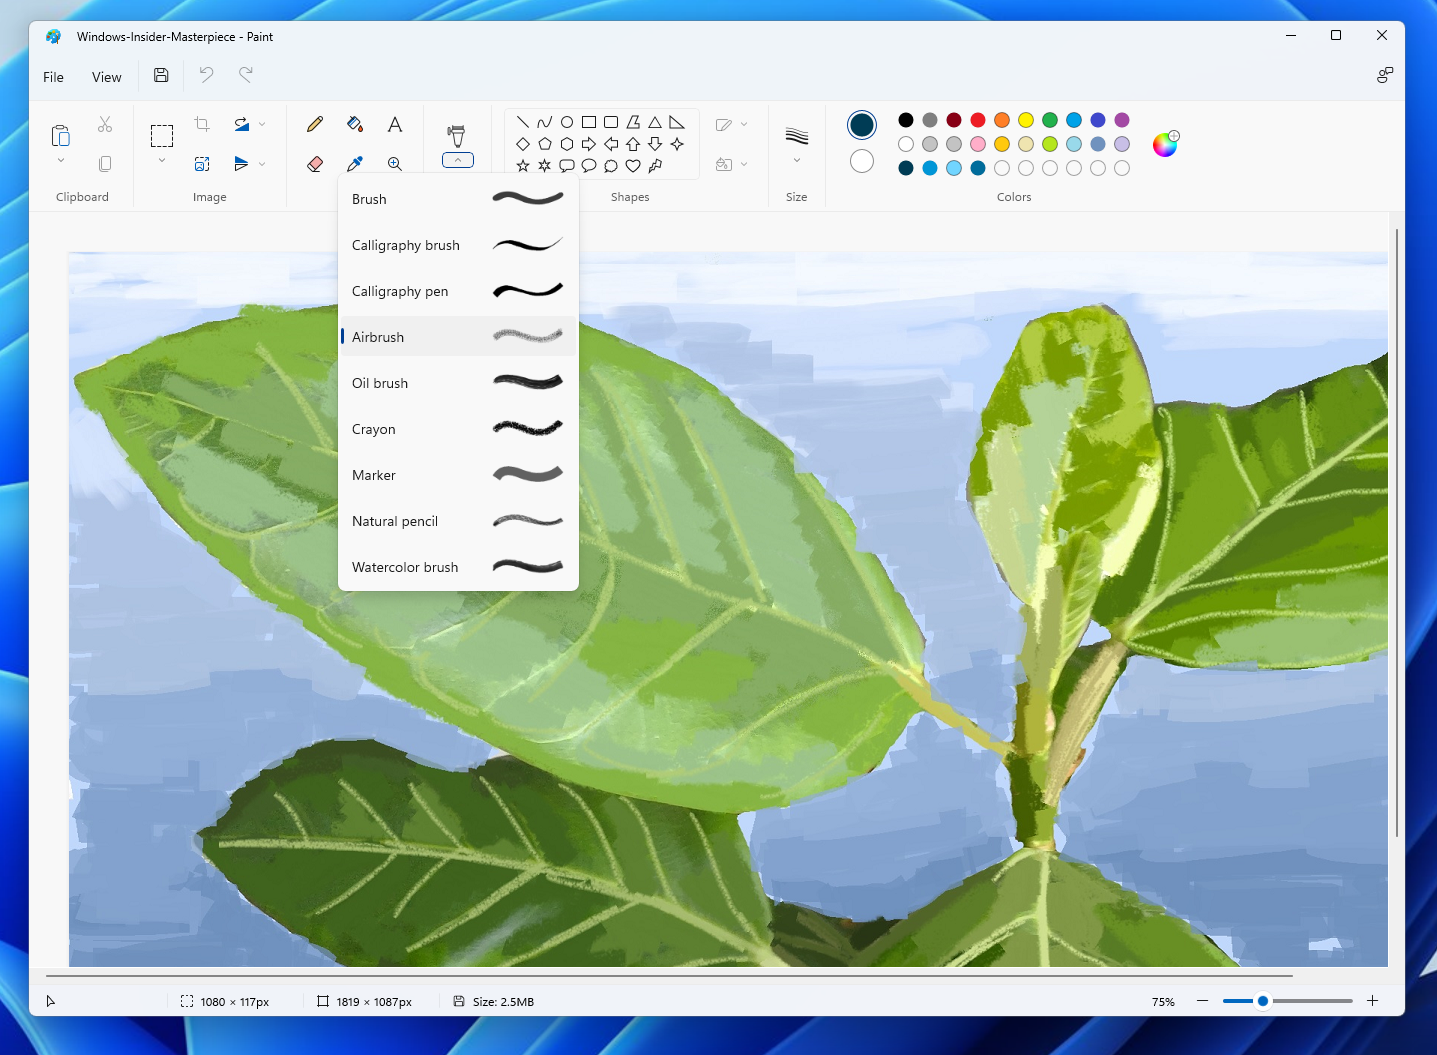 The new drop-down menu for brushes features a dynamic icon that changes depending on which brush you have chosen.